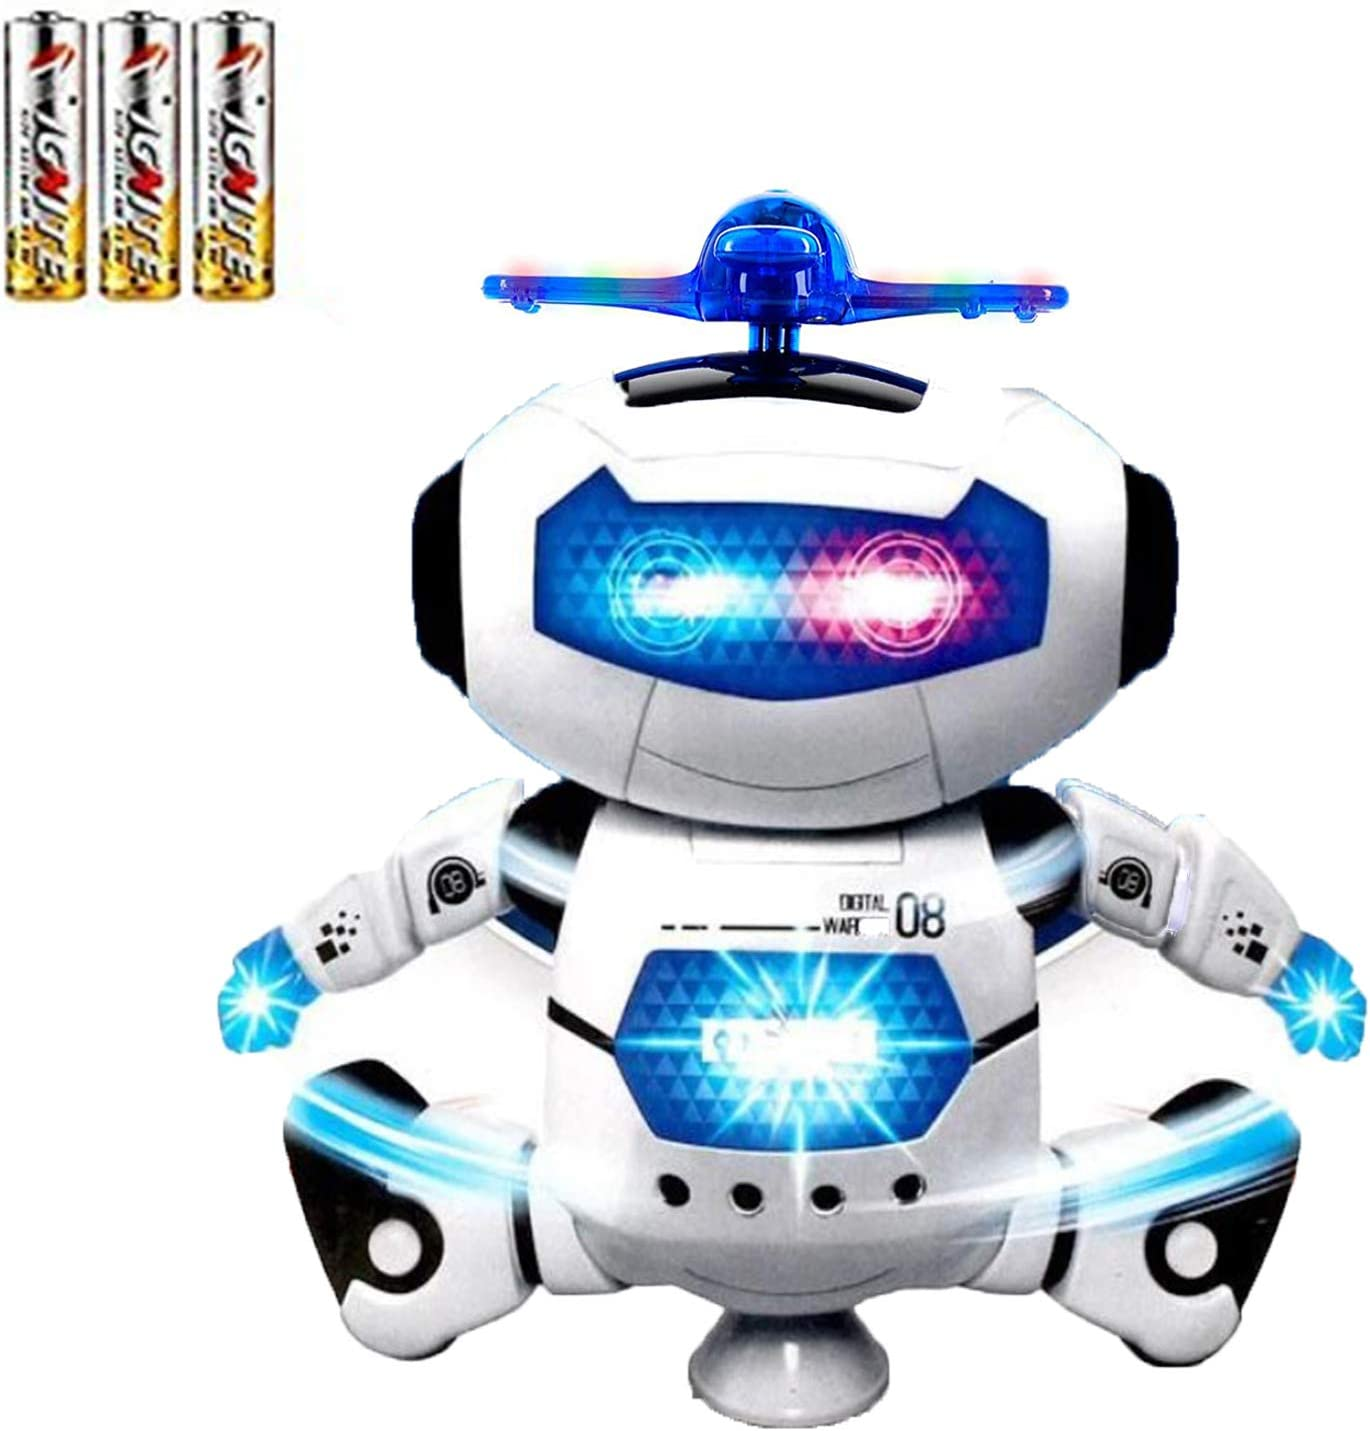 Musical Dancing Robot Toys W//Light For Boys Kids Toddler Birthday Xmas Gift Boy